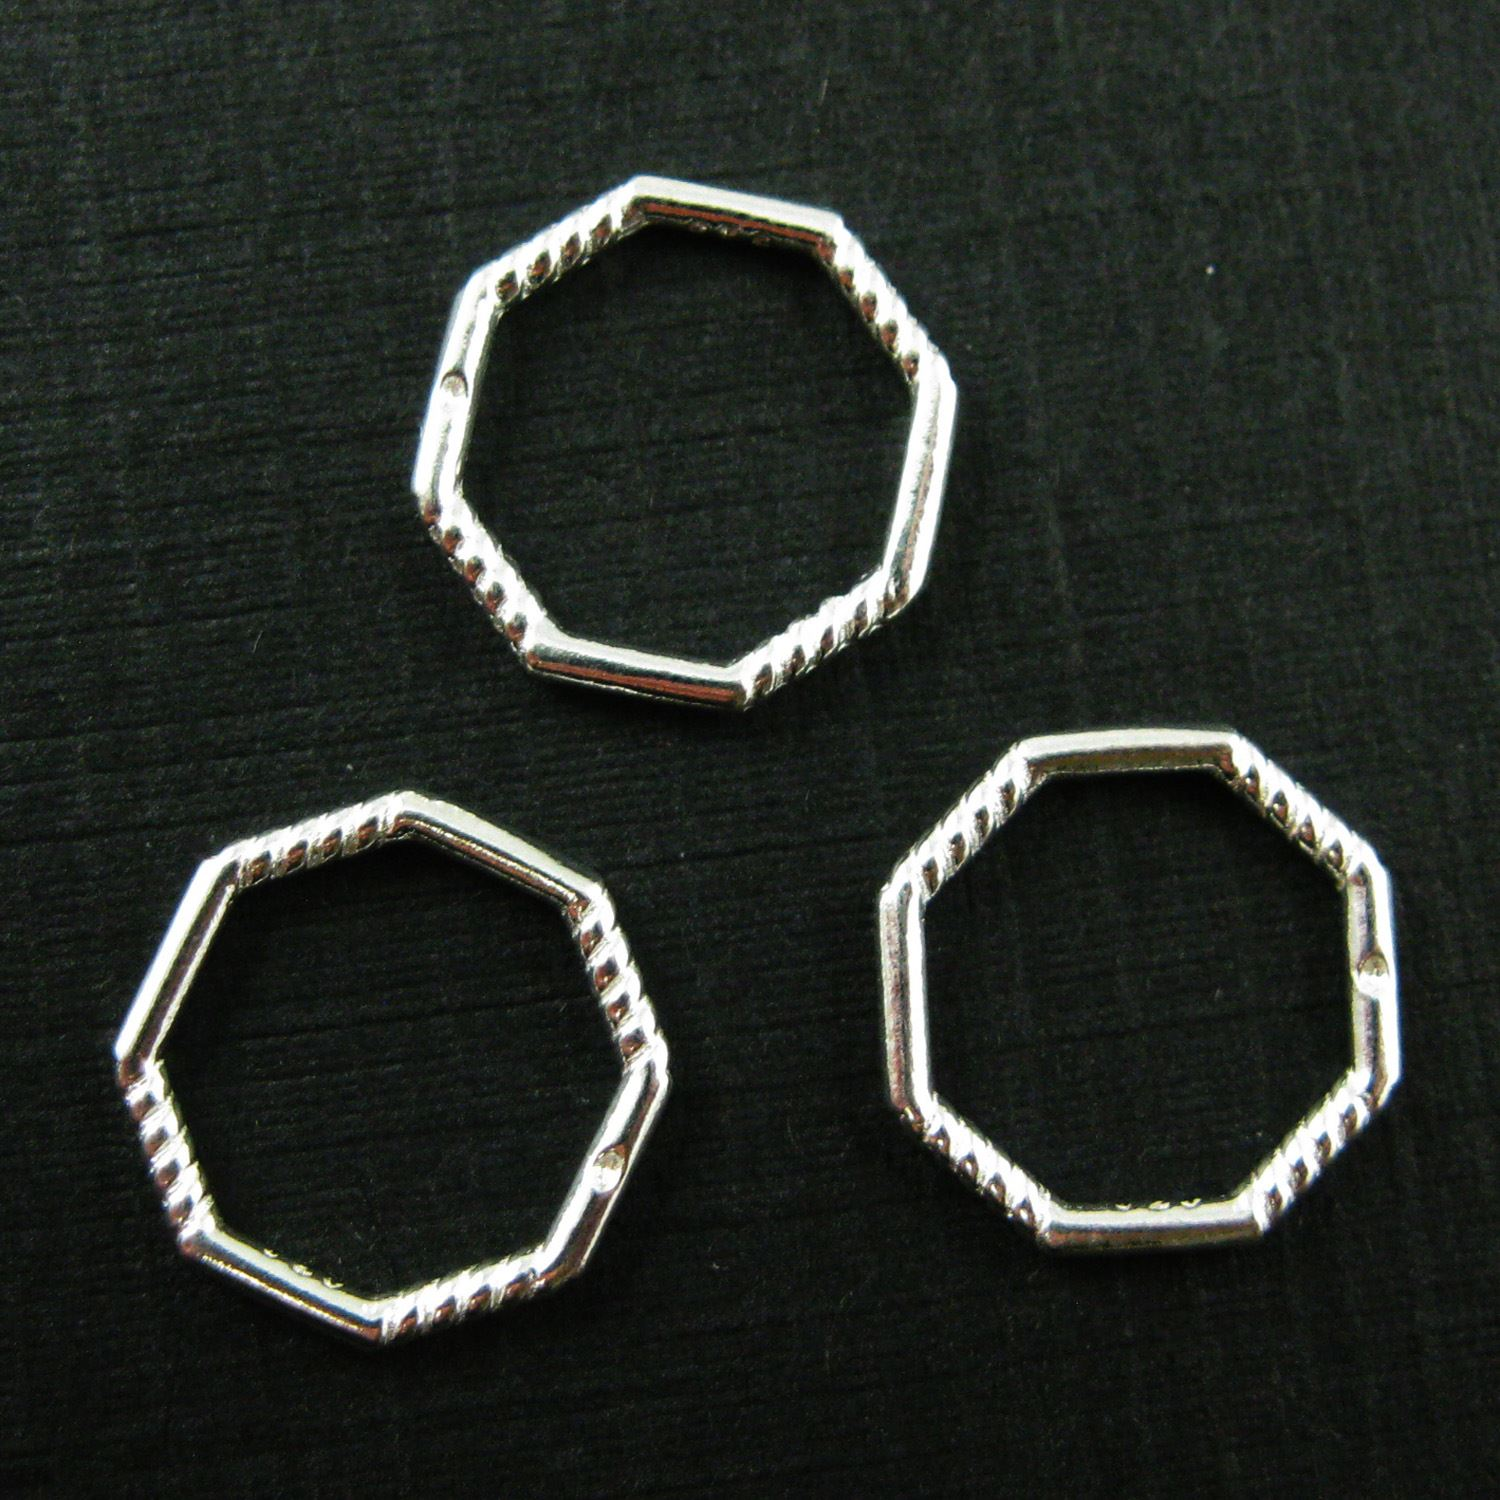 925 Sterling Silver Charm Connector- Silver Octagon Twisted and Smooth Rings- Closed Ring Connector-Silver Links- 11mm ( 3 pcs)